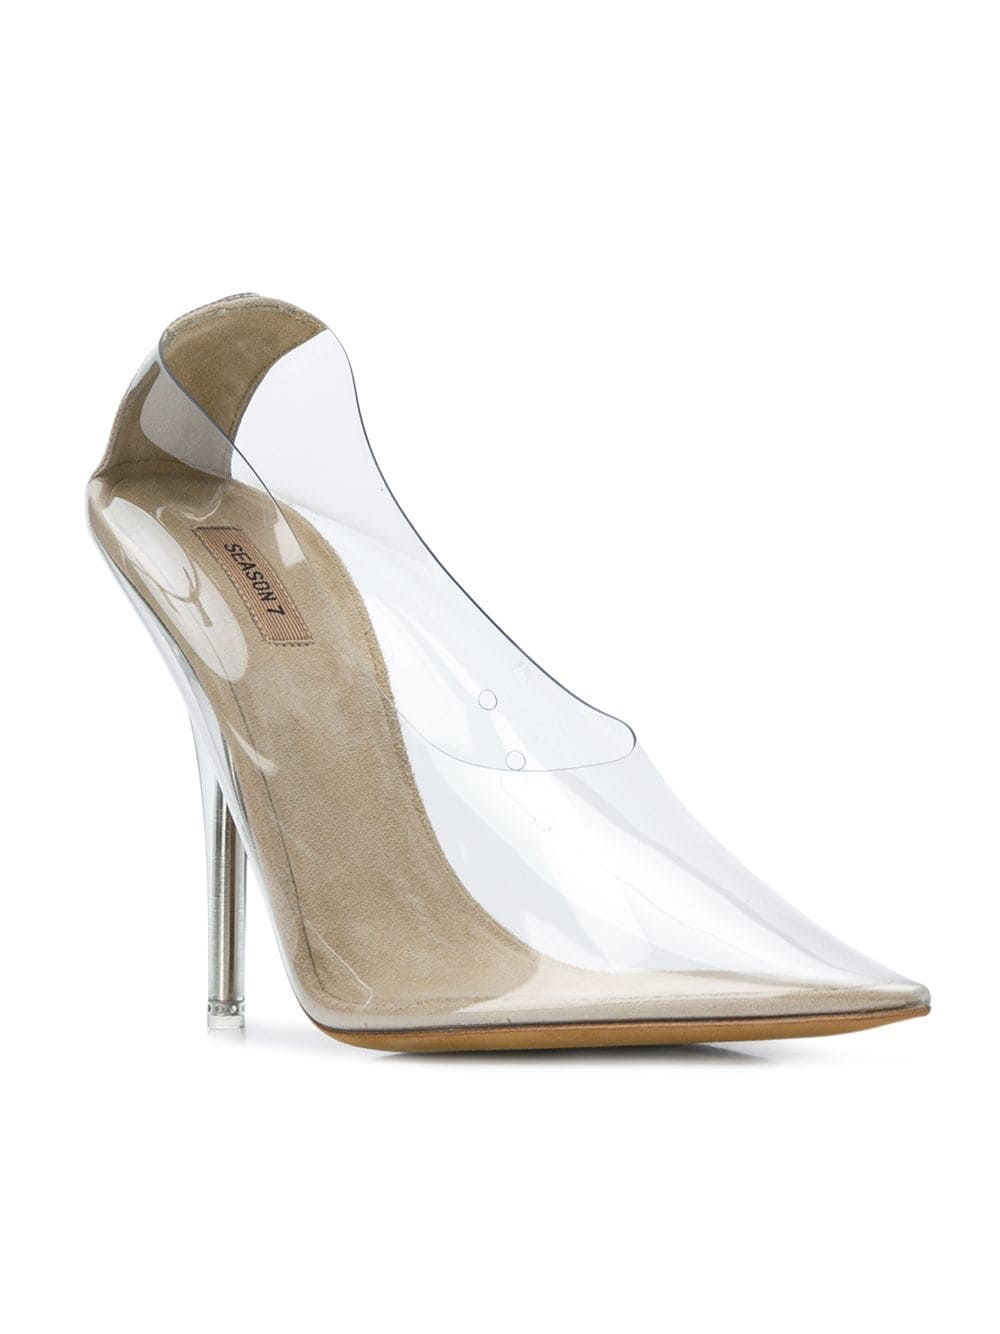 Clear Shoes - https://www.farfetch.com/shopping/women/yeezy-transparent-pointed-toe-pumps